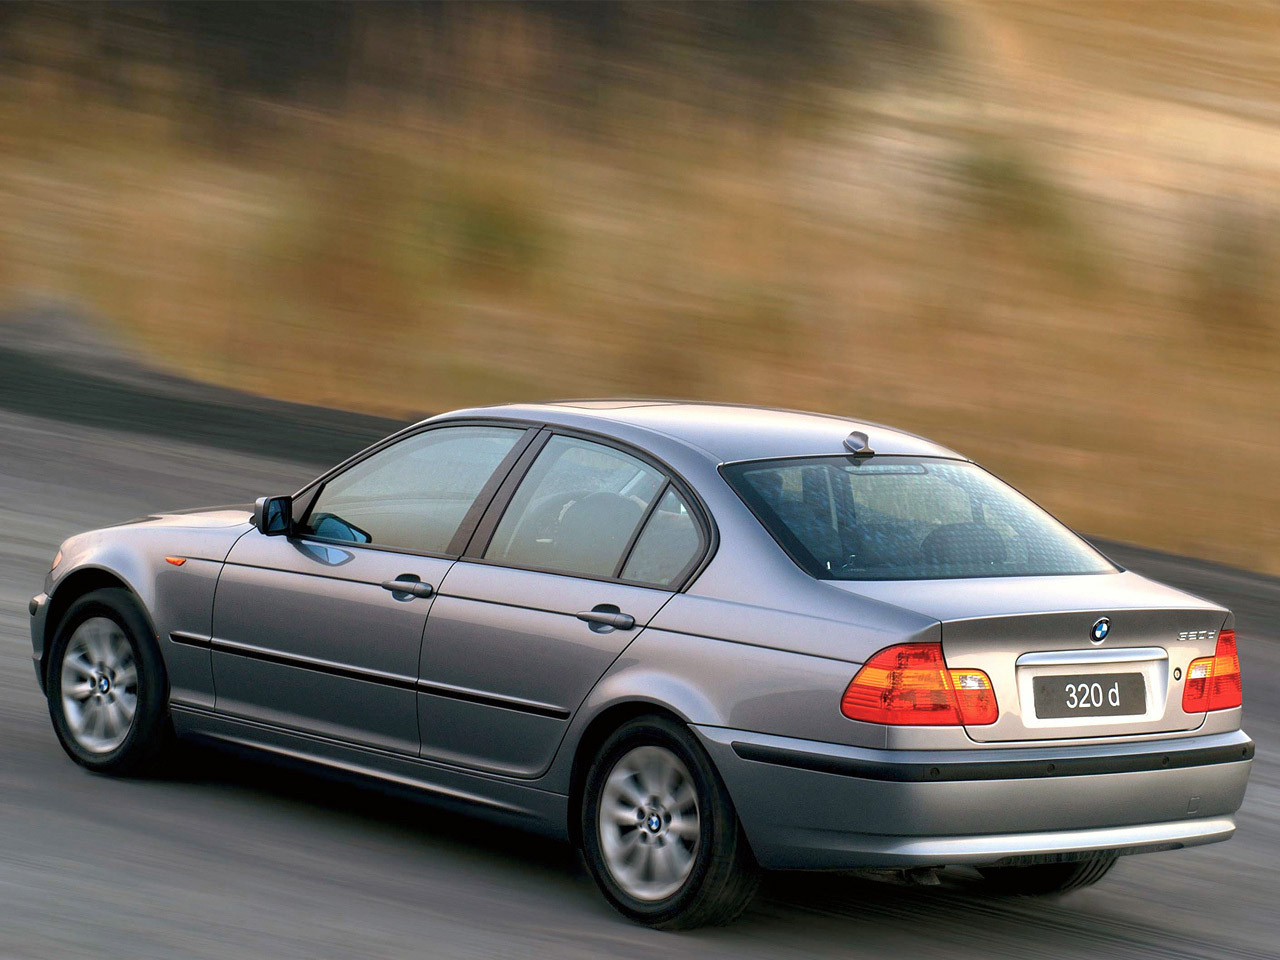 Bmw 320 2001 Review Amazing Pictures And Images Look